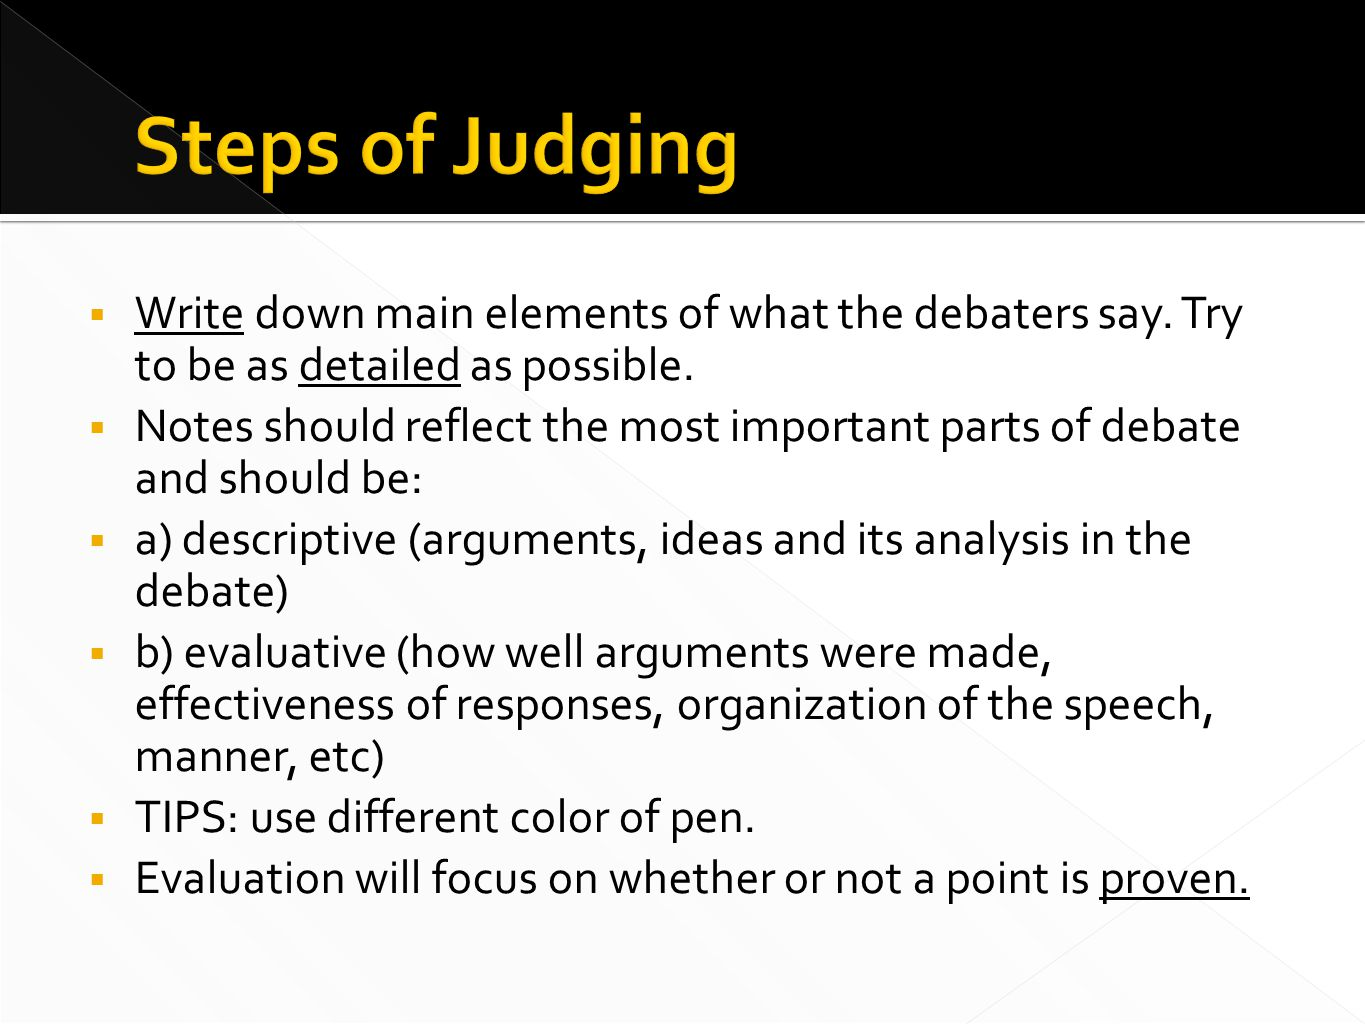  Write down main elements of what the debaters say.